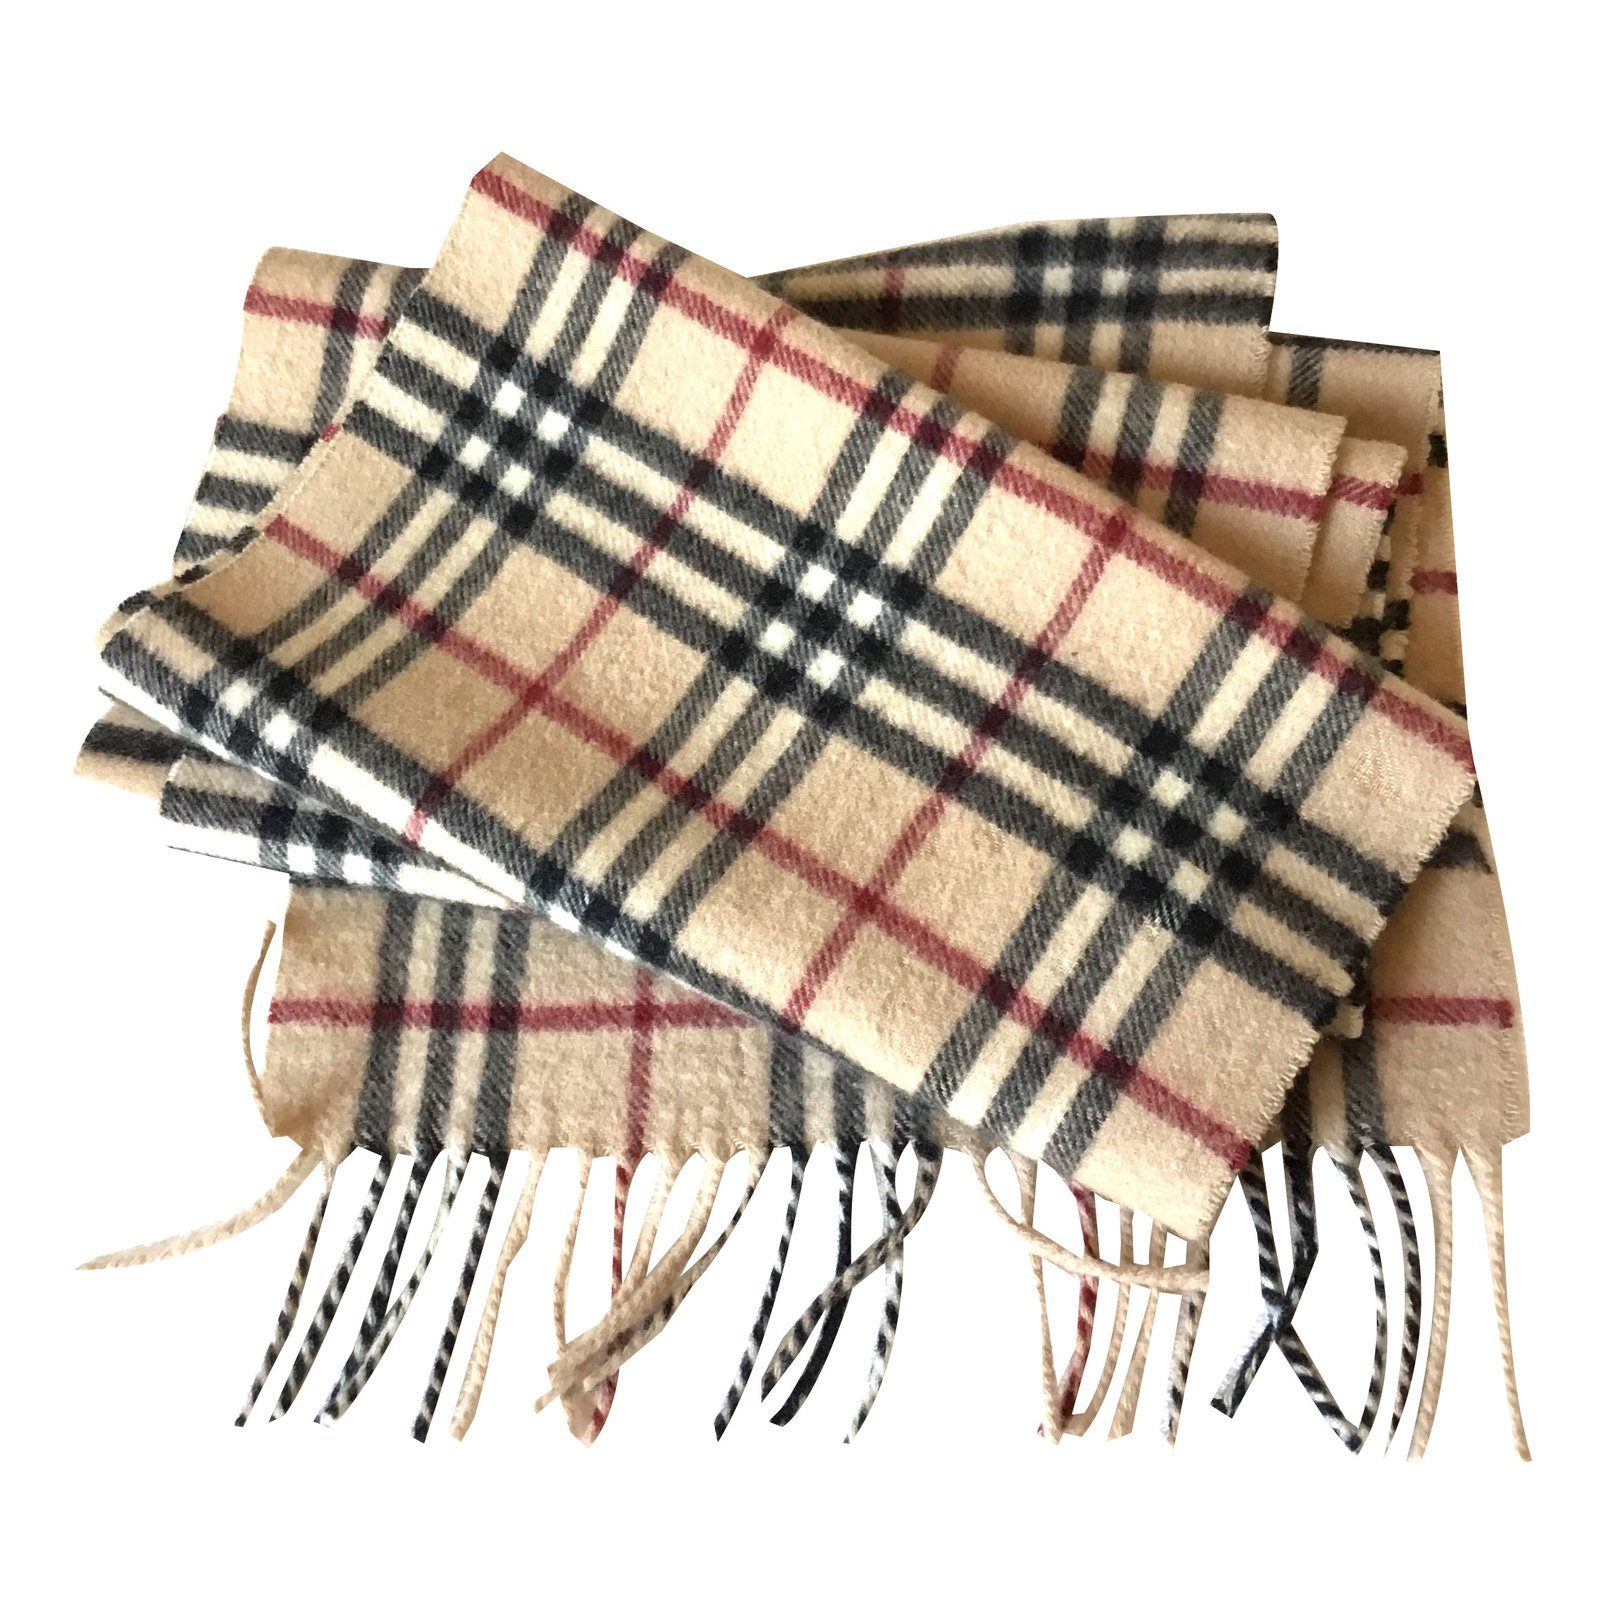 Burberry Men Scarfs Cheaper Than Retail Price Buy Clothing Accessories And Lifestyle Products For Women Men